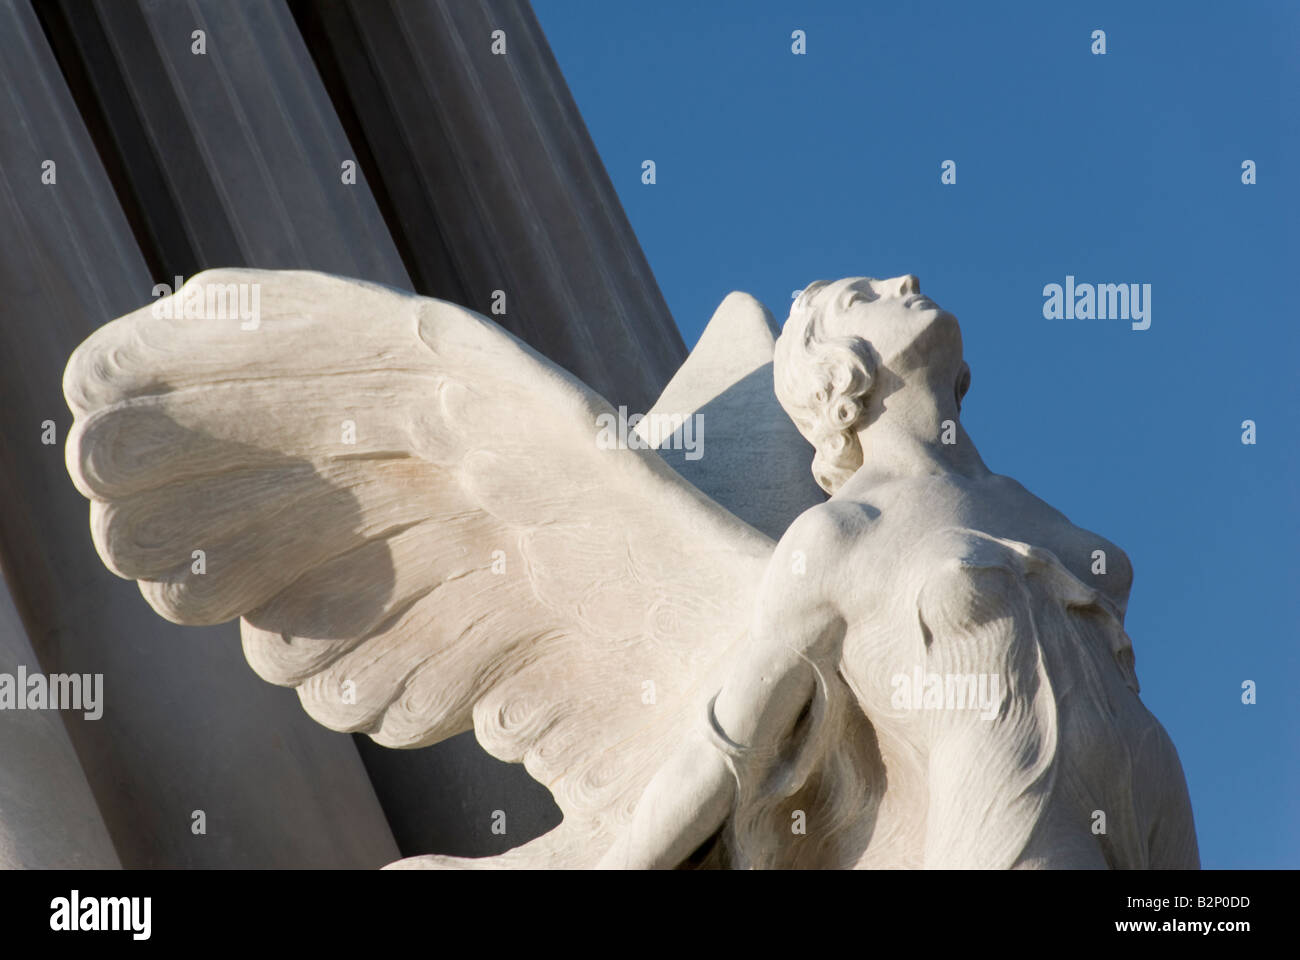 Detail of a female angel on an Art Deco statue of the colonial Monumento a Maximo Gomez in La Habana Vieja Havana - Stock Image